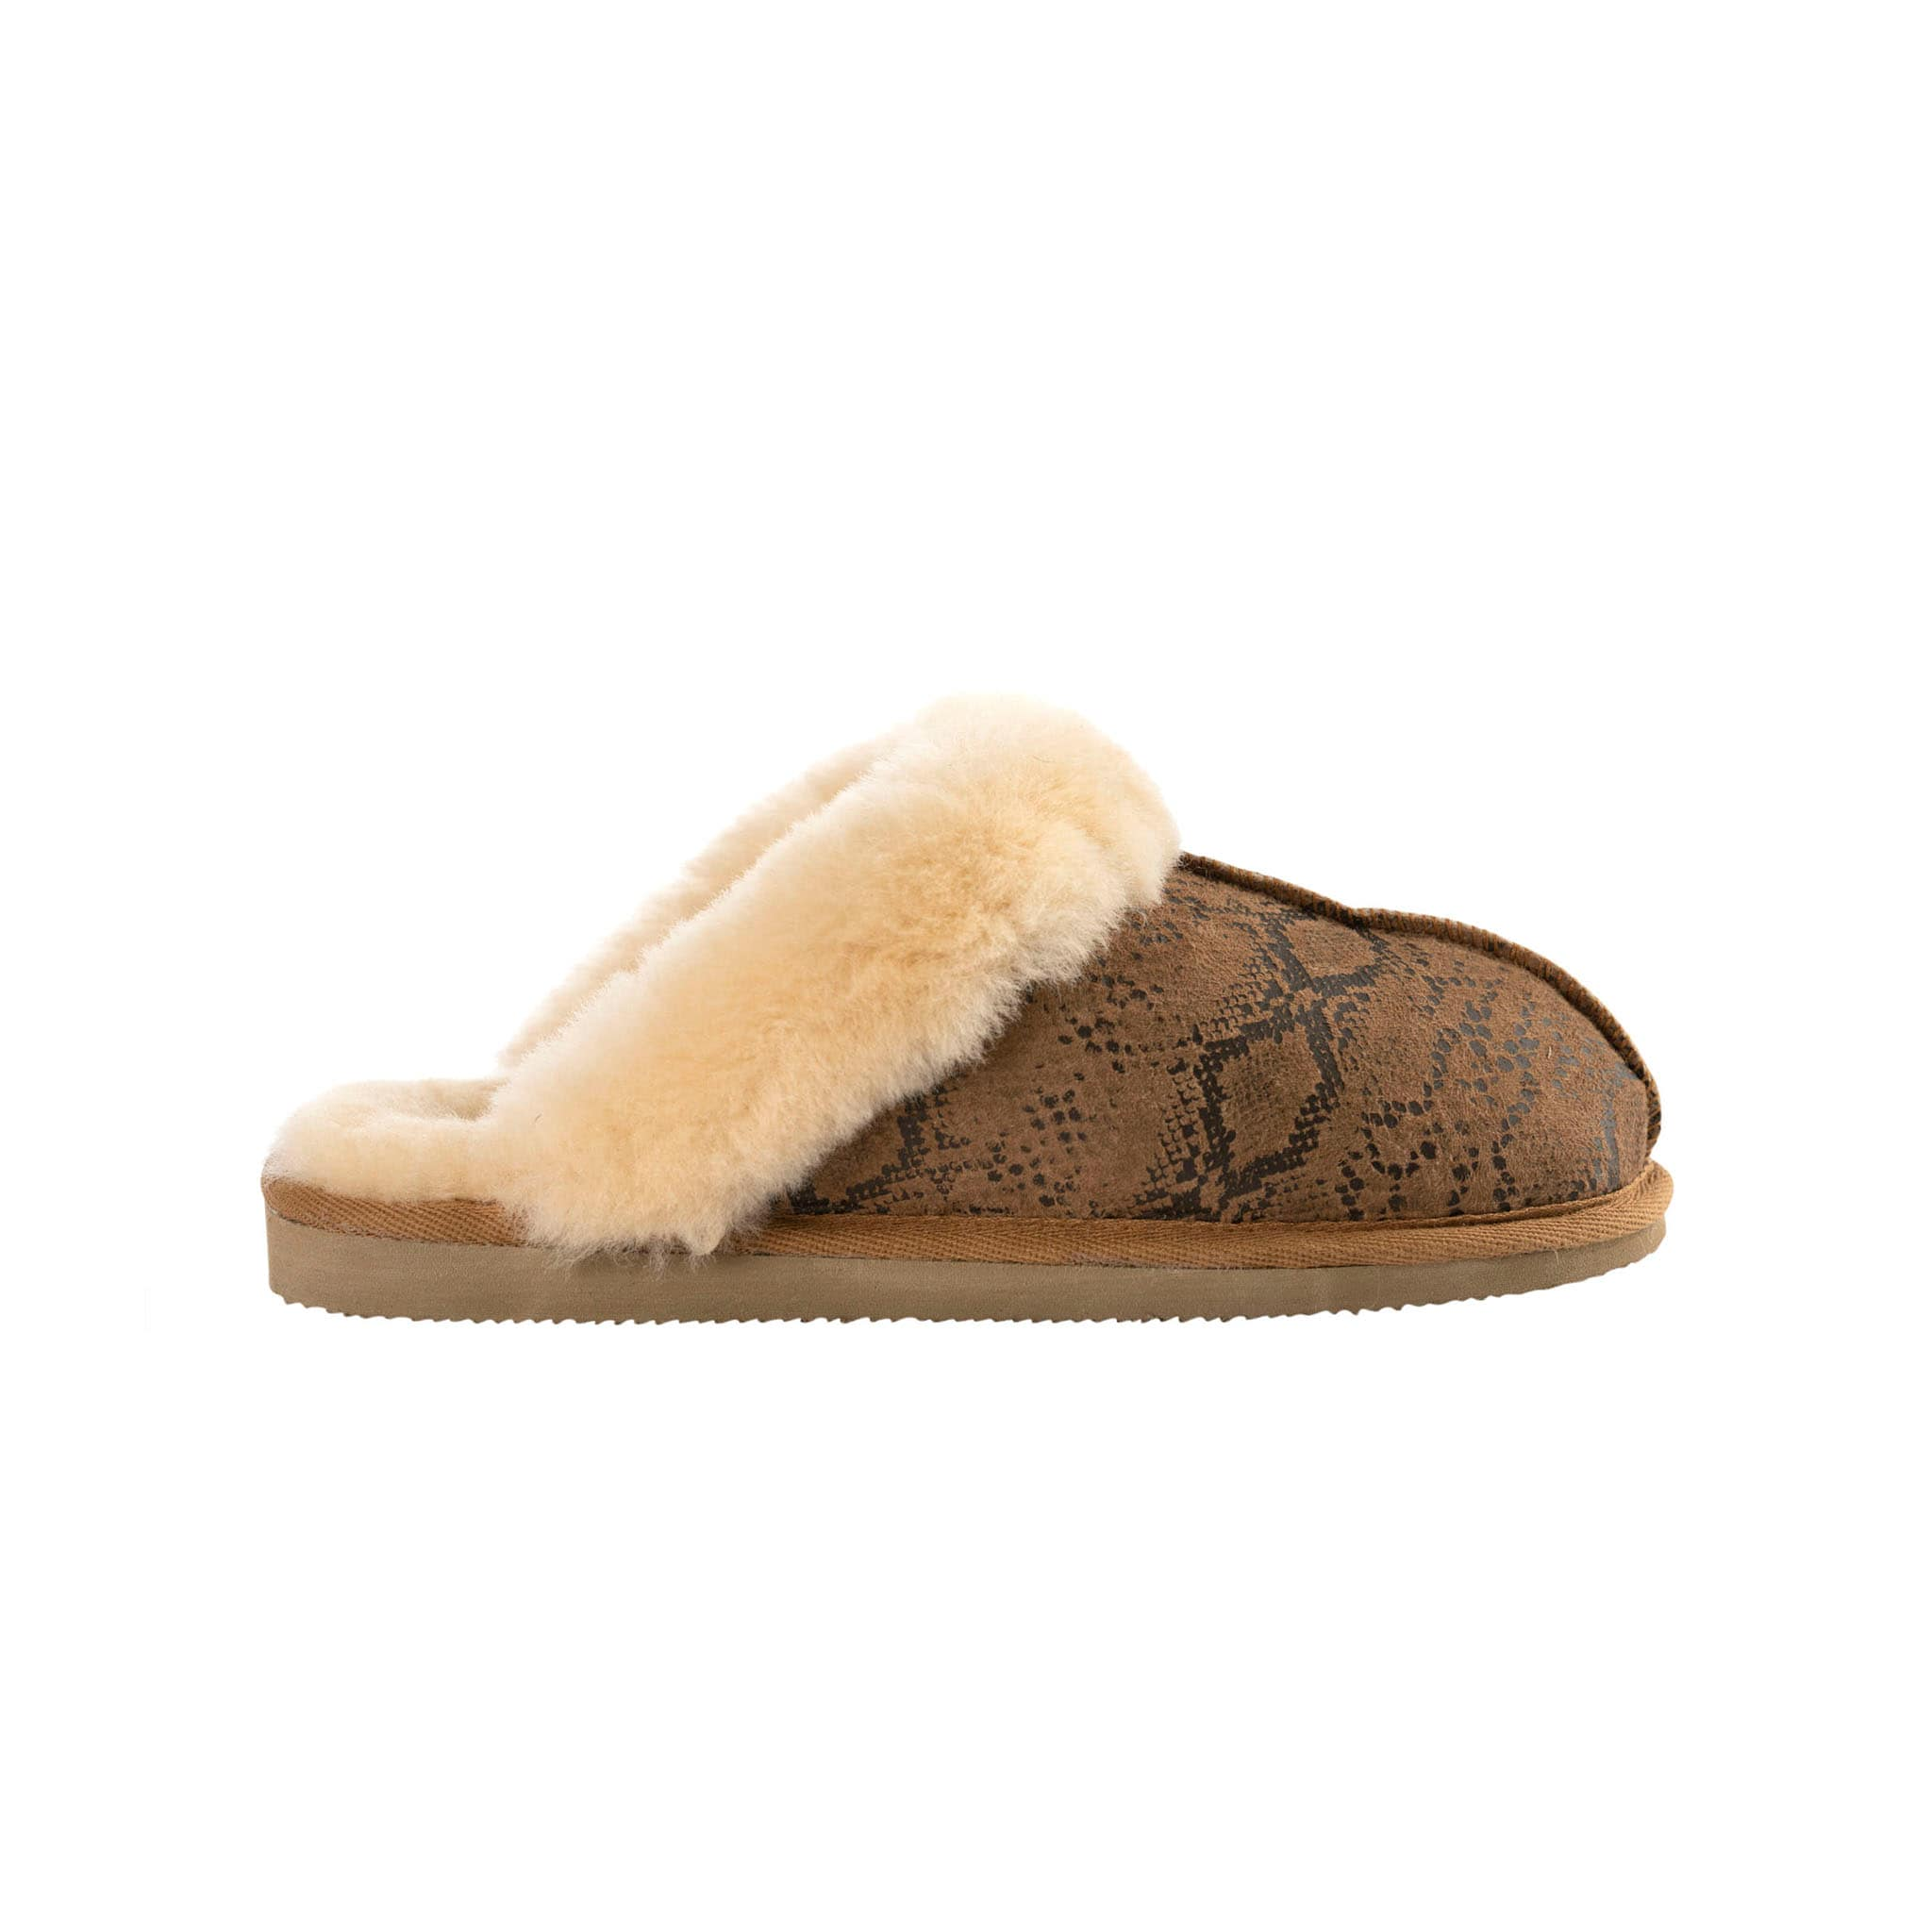 Jessica sheepskin slippers